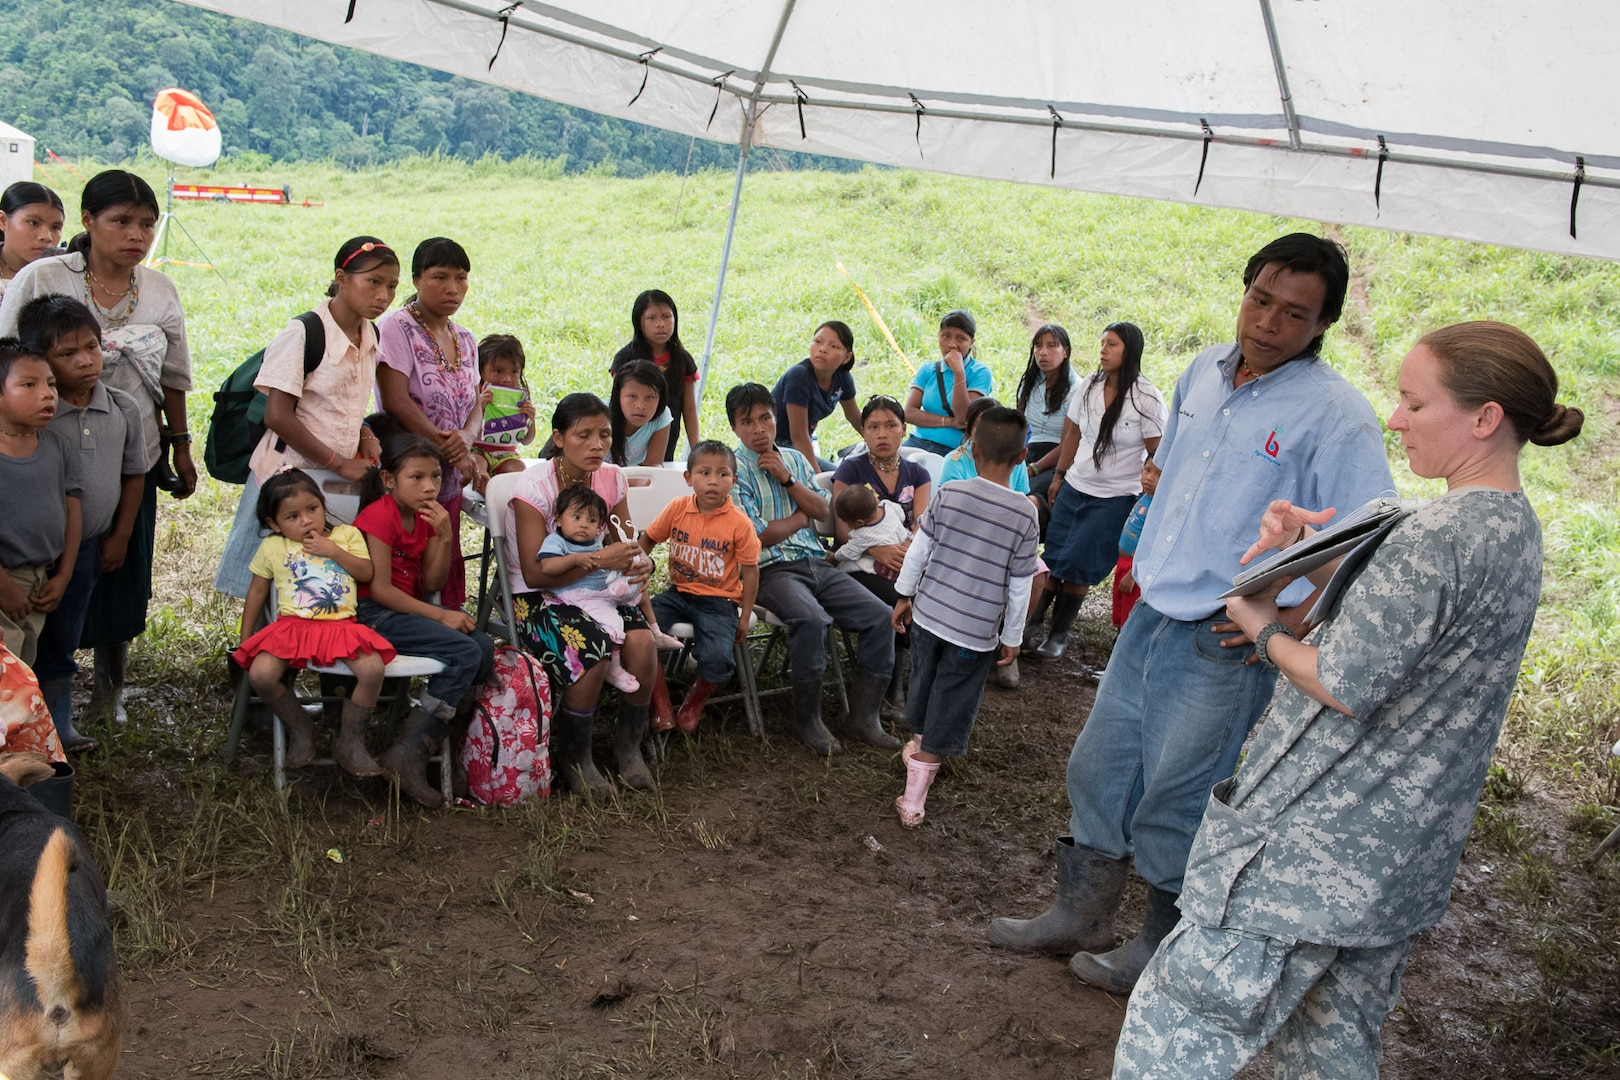 Army Staff Sgt. Lisa Kent, Joint Task Force-Bravo preventive medicine technician, instructs a family on preventive health practices during Operation Pura Vida, a joint humanitarian mission and Medical Readiness Training Exercise at an indigenous region in the Caribbean province of Limón, Nov. 1 to 3. The group arrived in four helicopters from the 1st Battalion 228th Aviation Regiment and joined 30 Costa Rican physicians to provide basic healthcare services to approximately 300 residents of the indigenous village of Piedra Mesa, Telire region of Talamanca, Limón